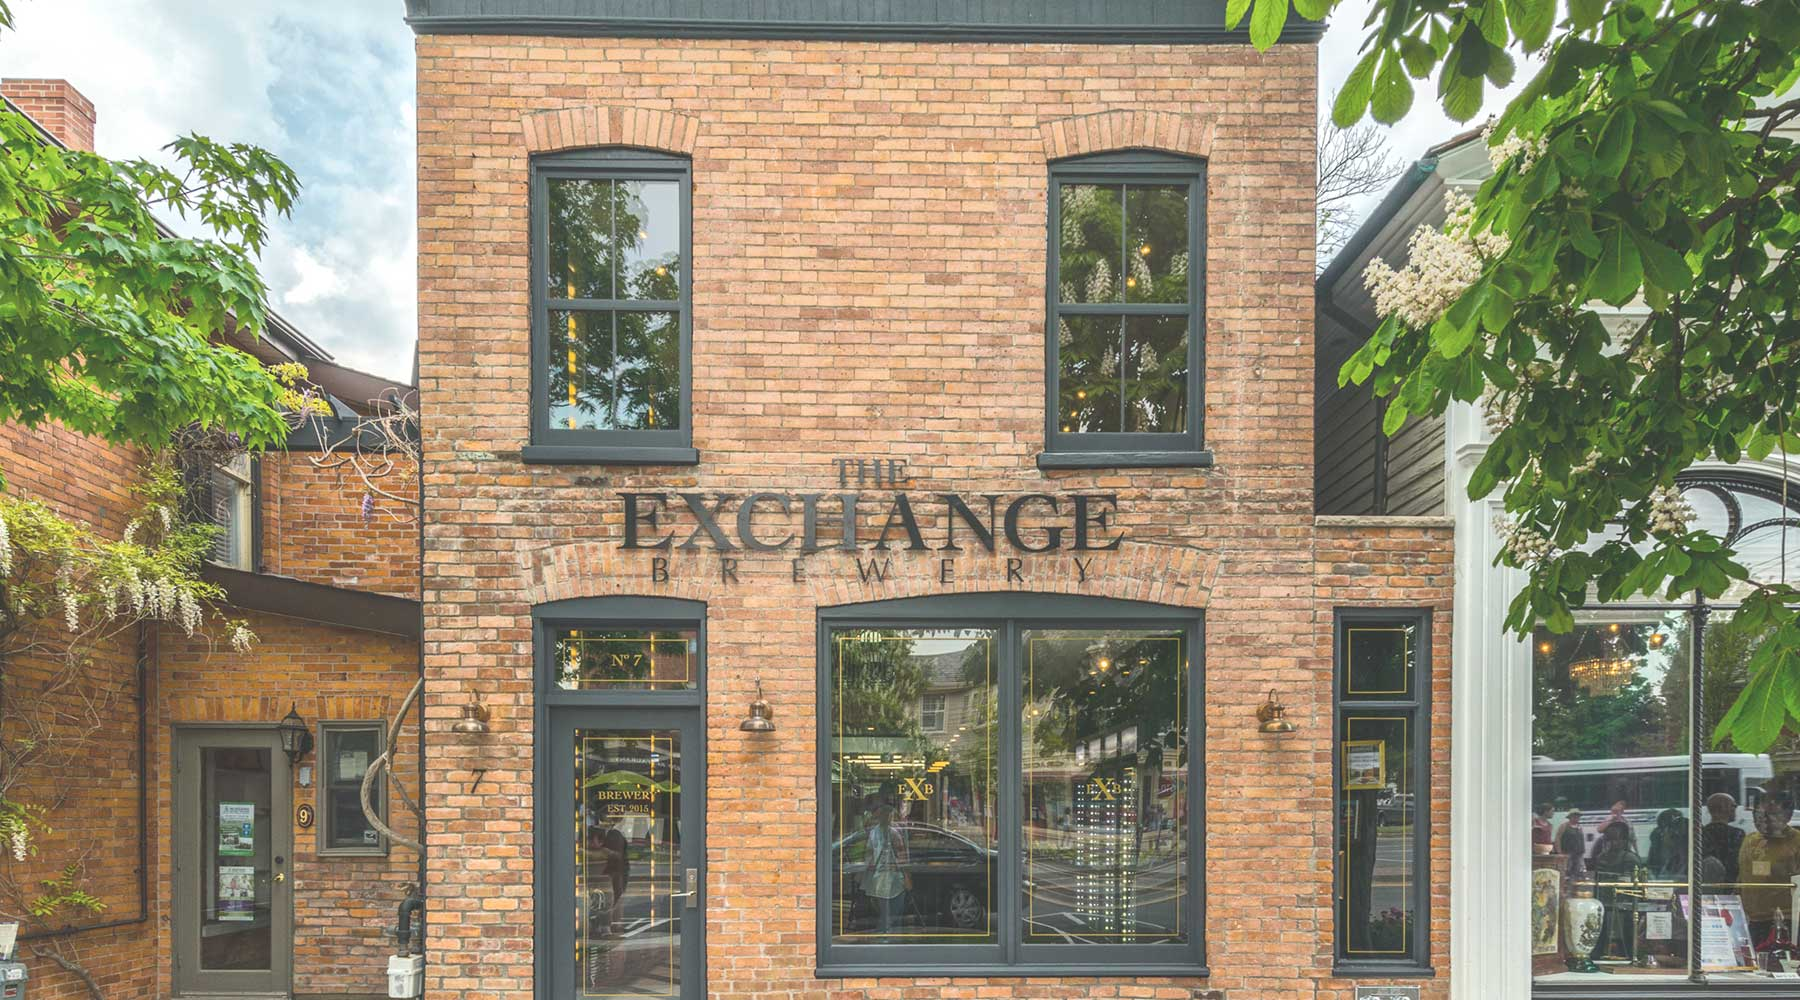 The Exchange Brewery | Just Wine